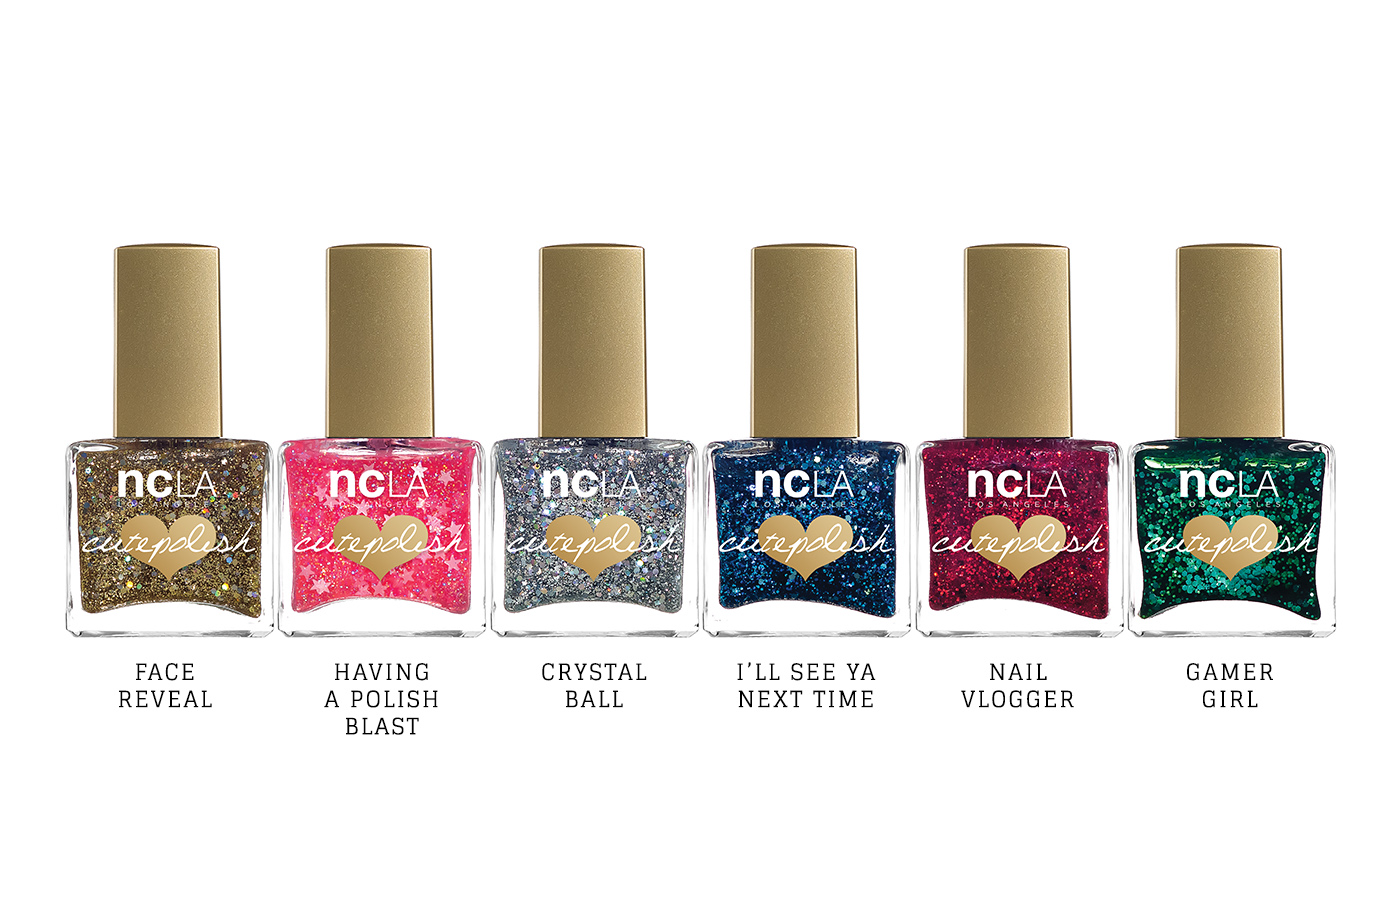 Polishes from the collaboration between NCLA and CutePolish.